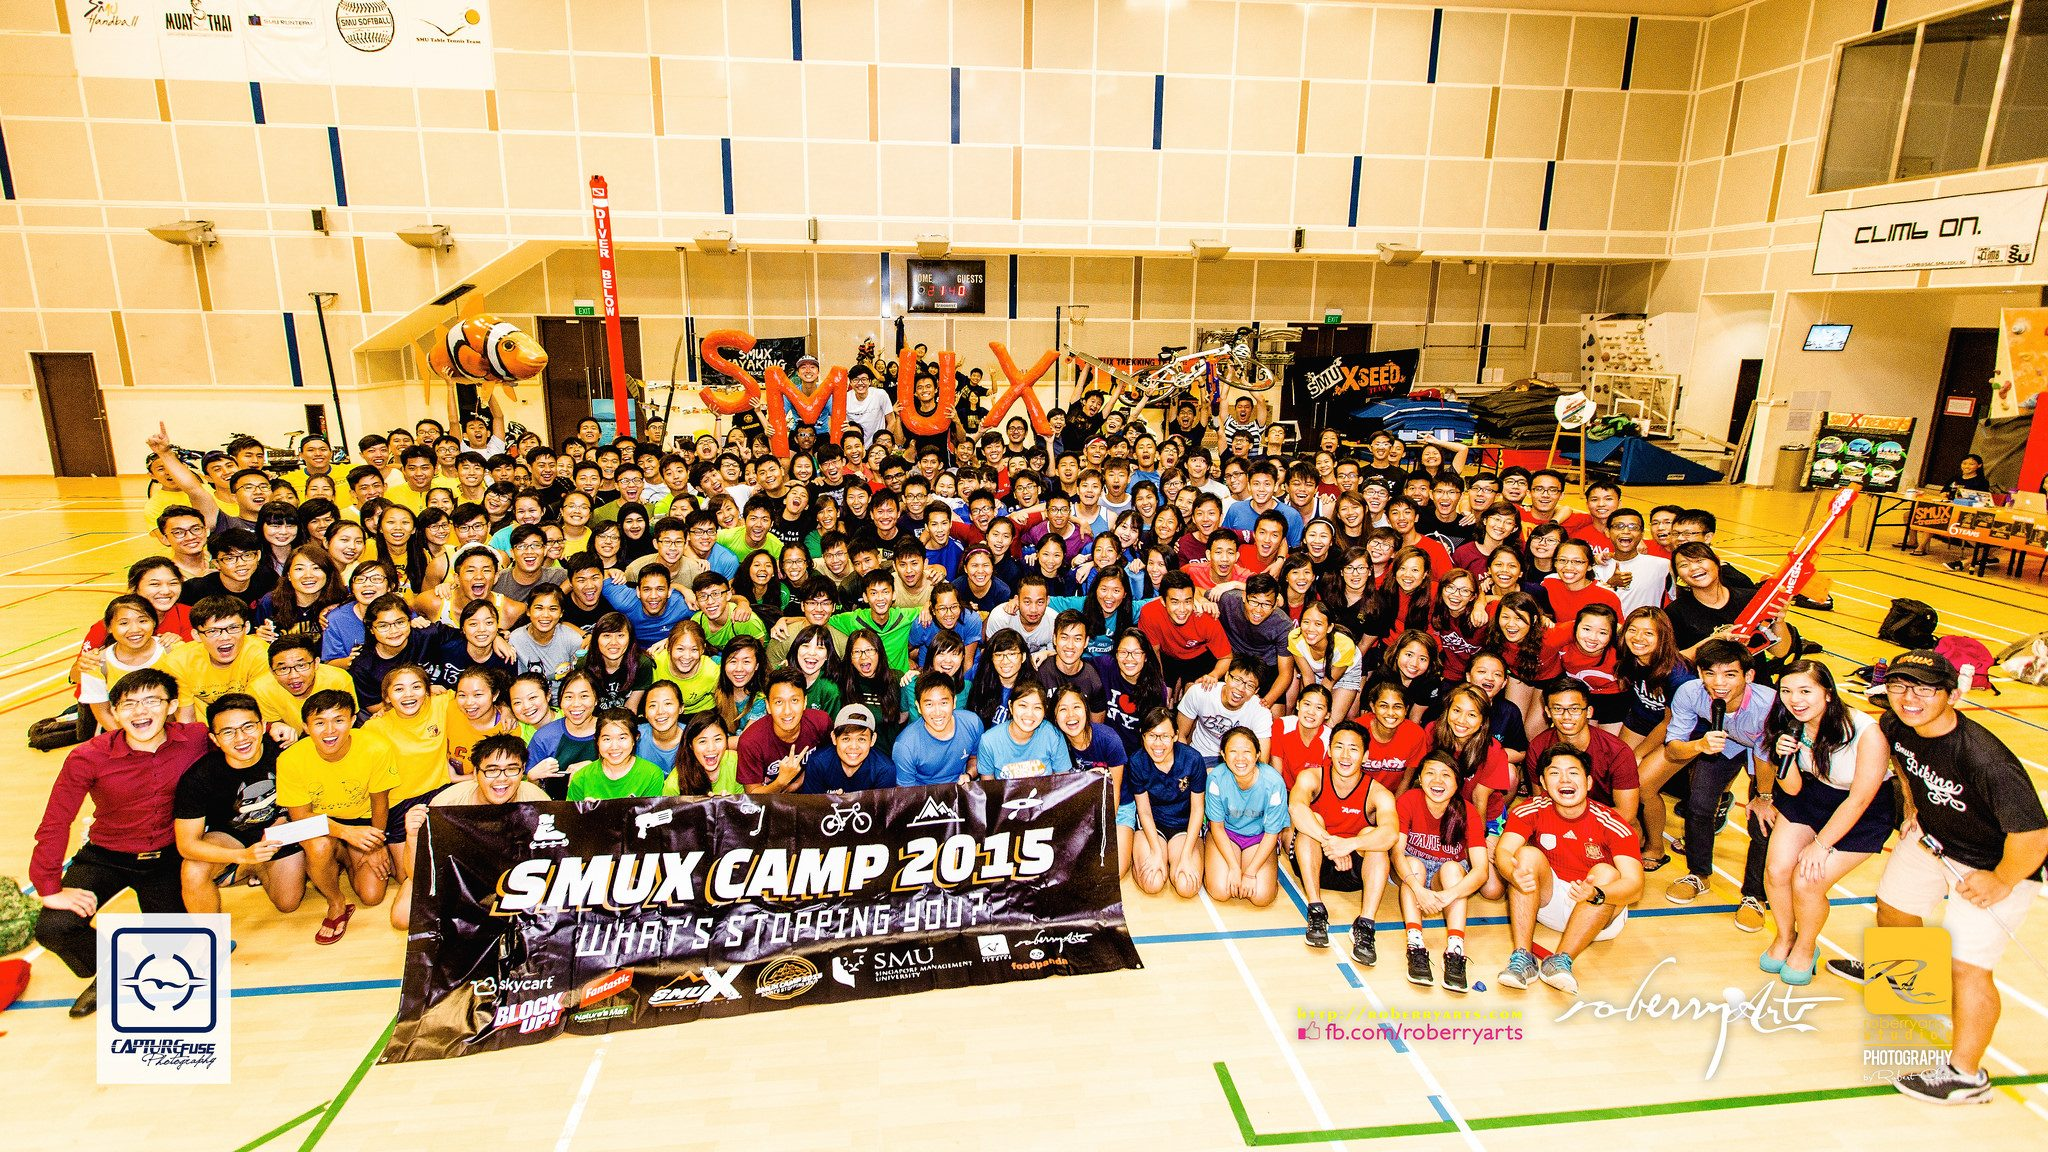 Camps // SMUX Camp 2015 – What's Stopping You